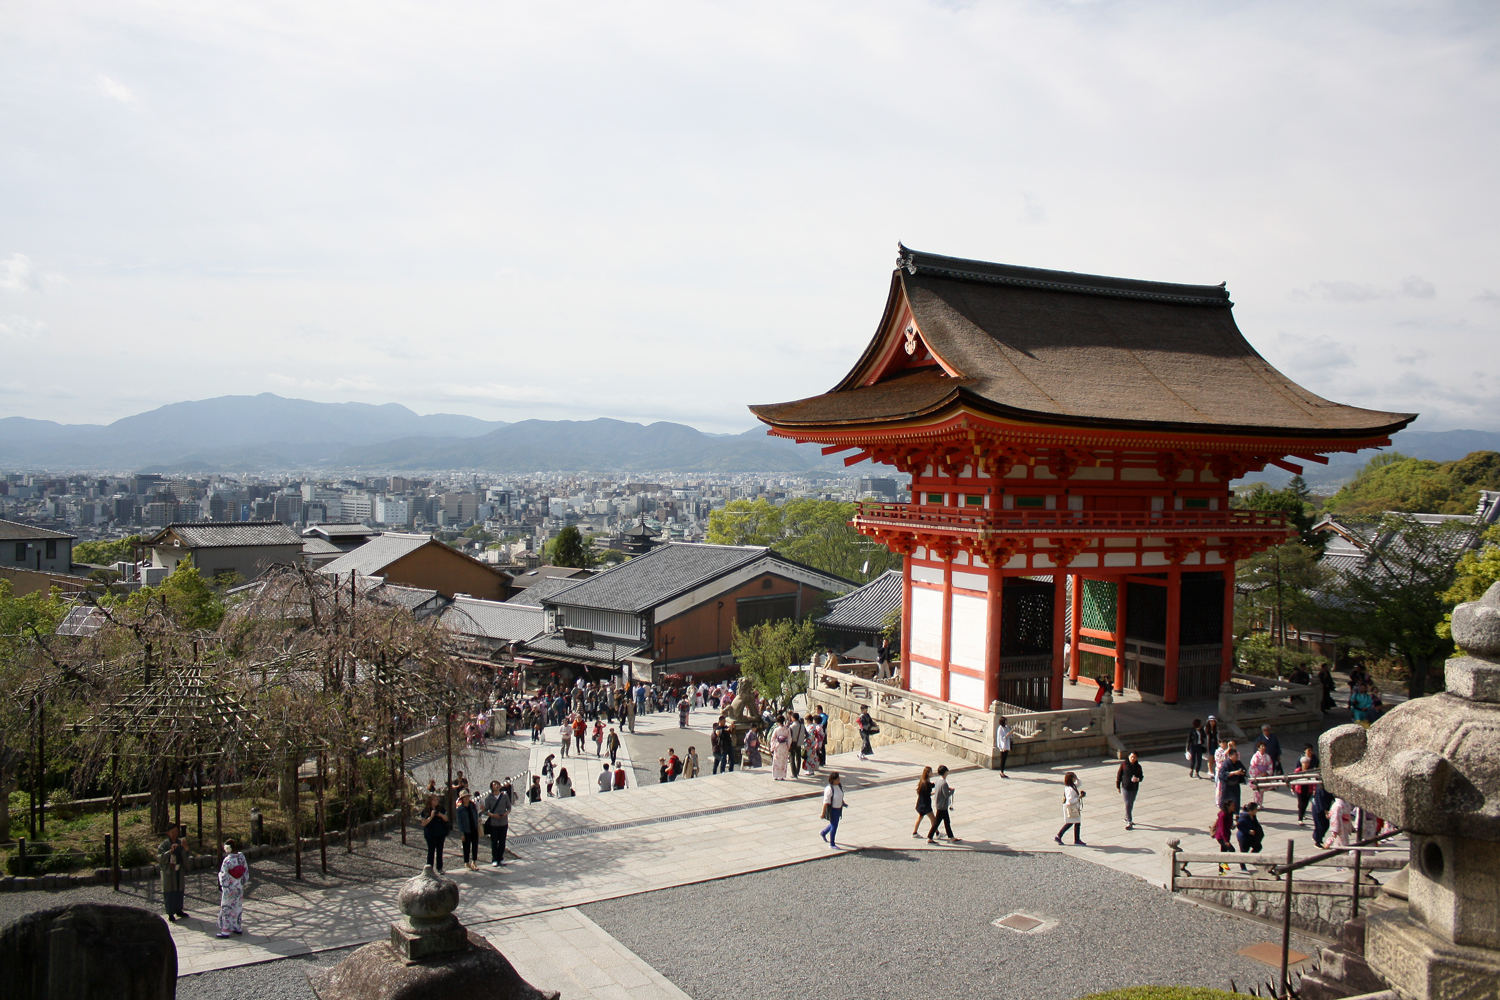 The path to Kiyomizu-dera, Kyoto